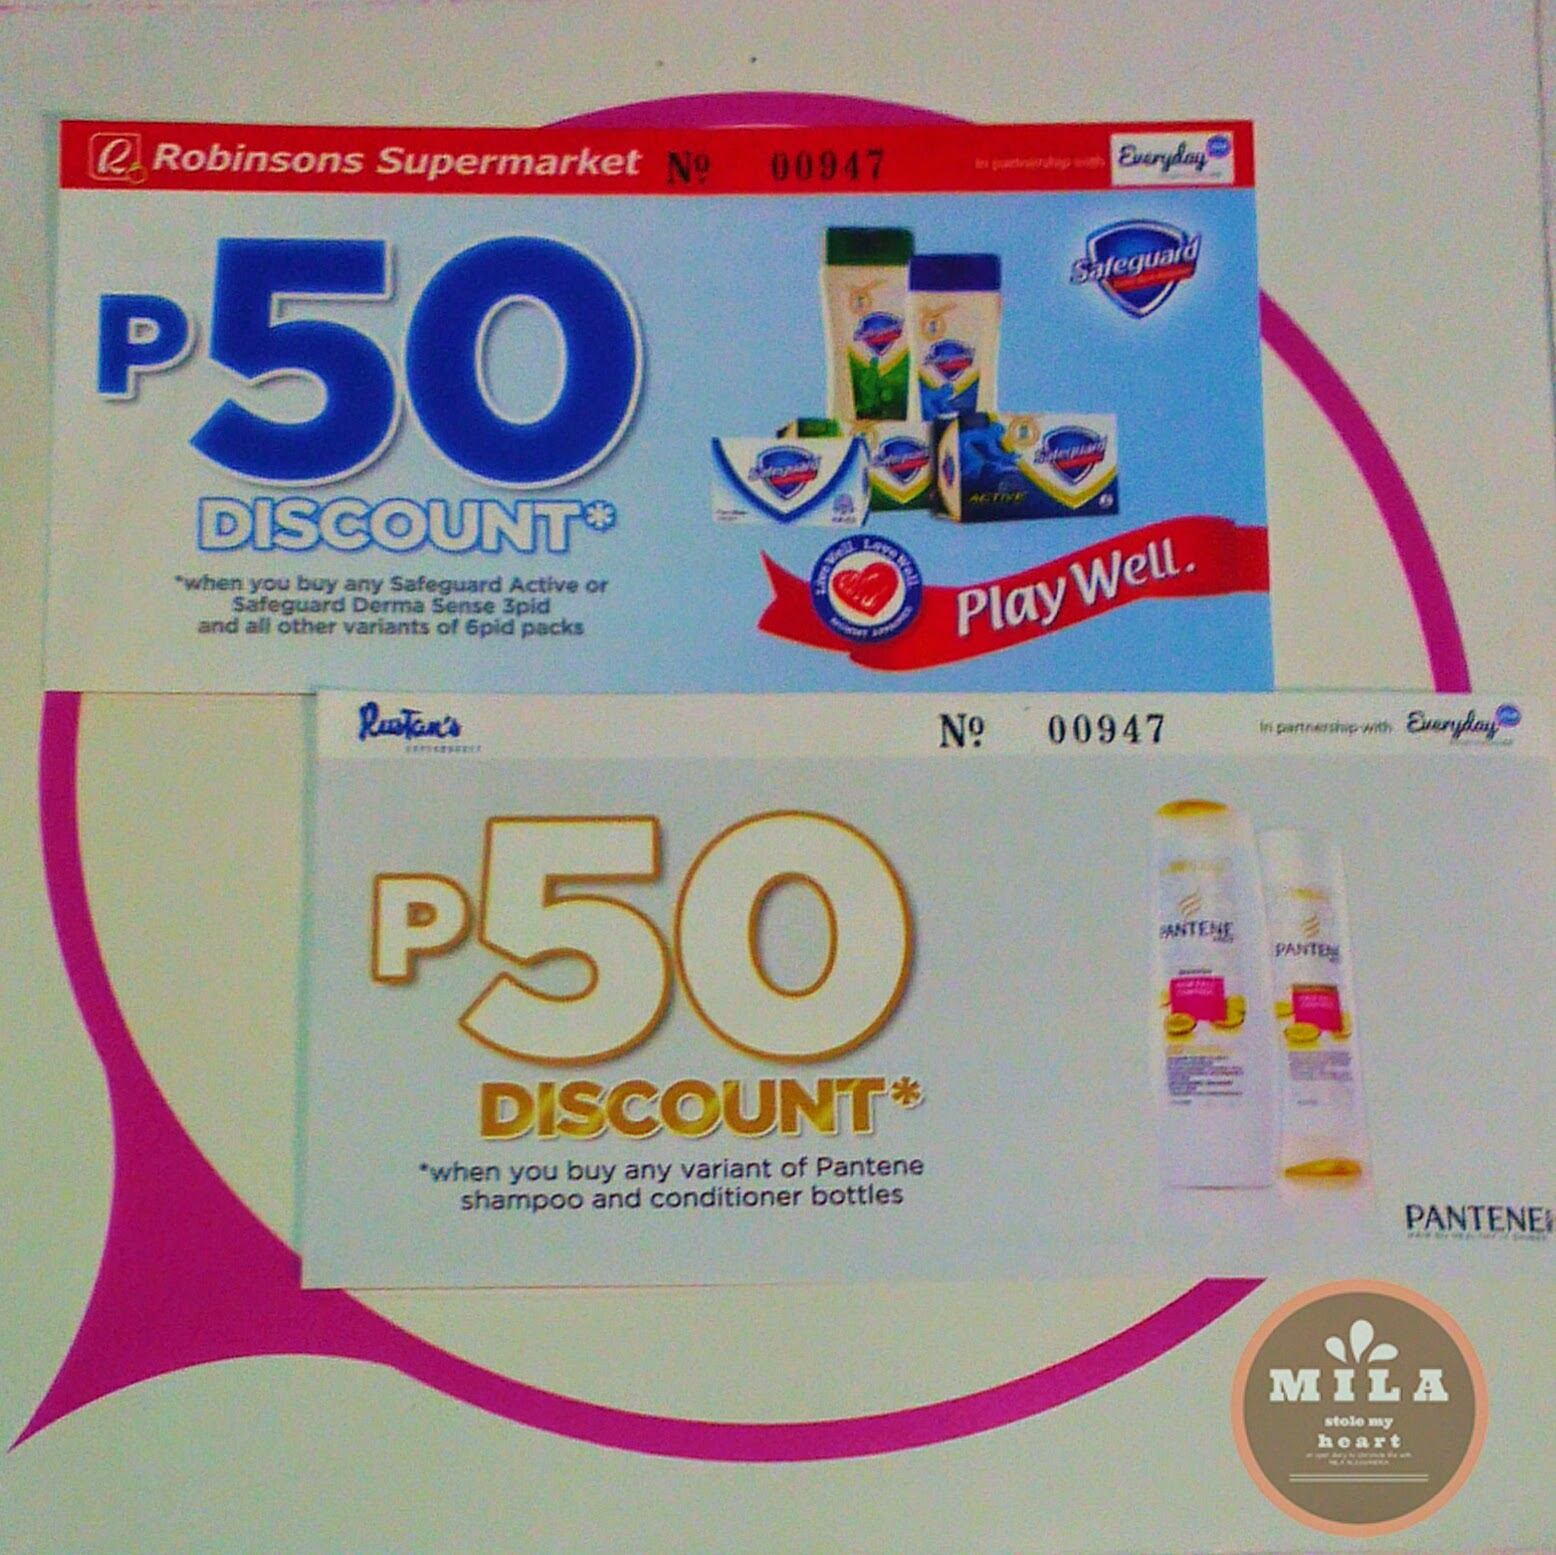 Safeguard and Pantene Discount Vouchers